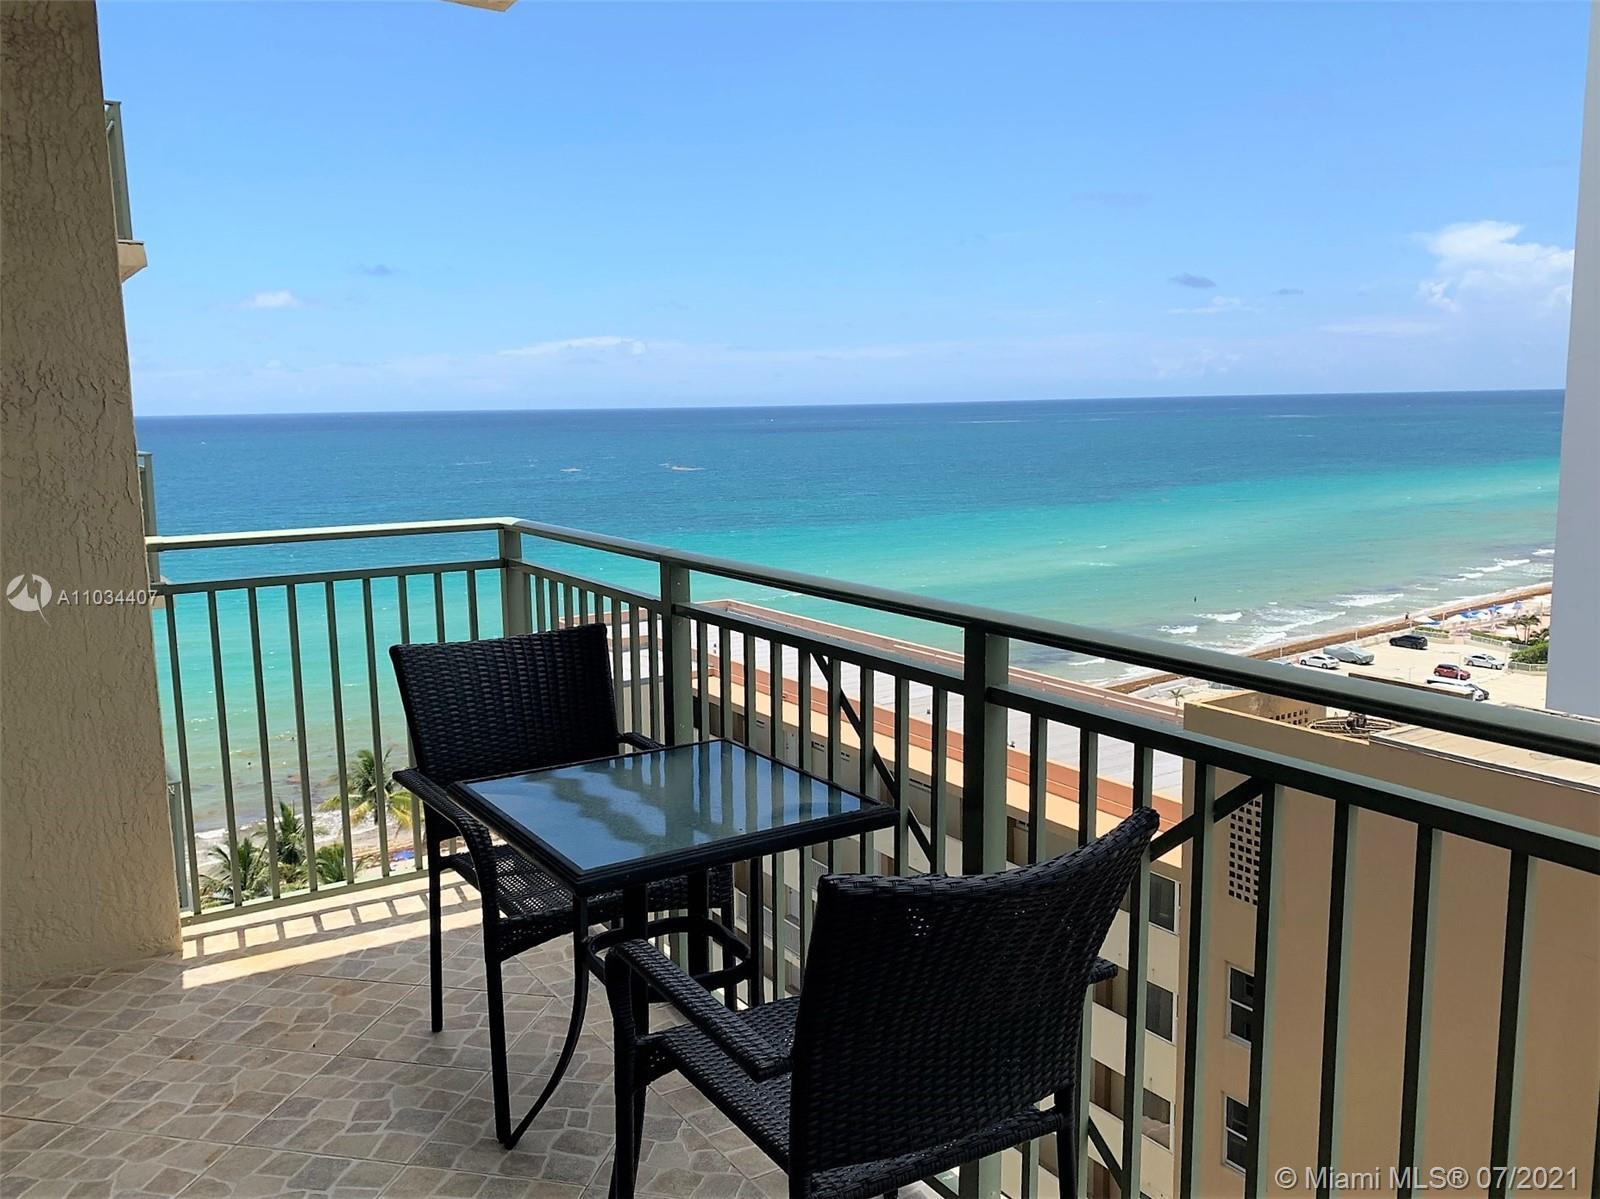 Don't let this unit get away also! Spacious 2 bedroom beach condo at 2080 Ocean Drive! 12th floor wi